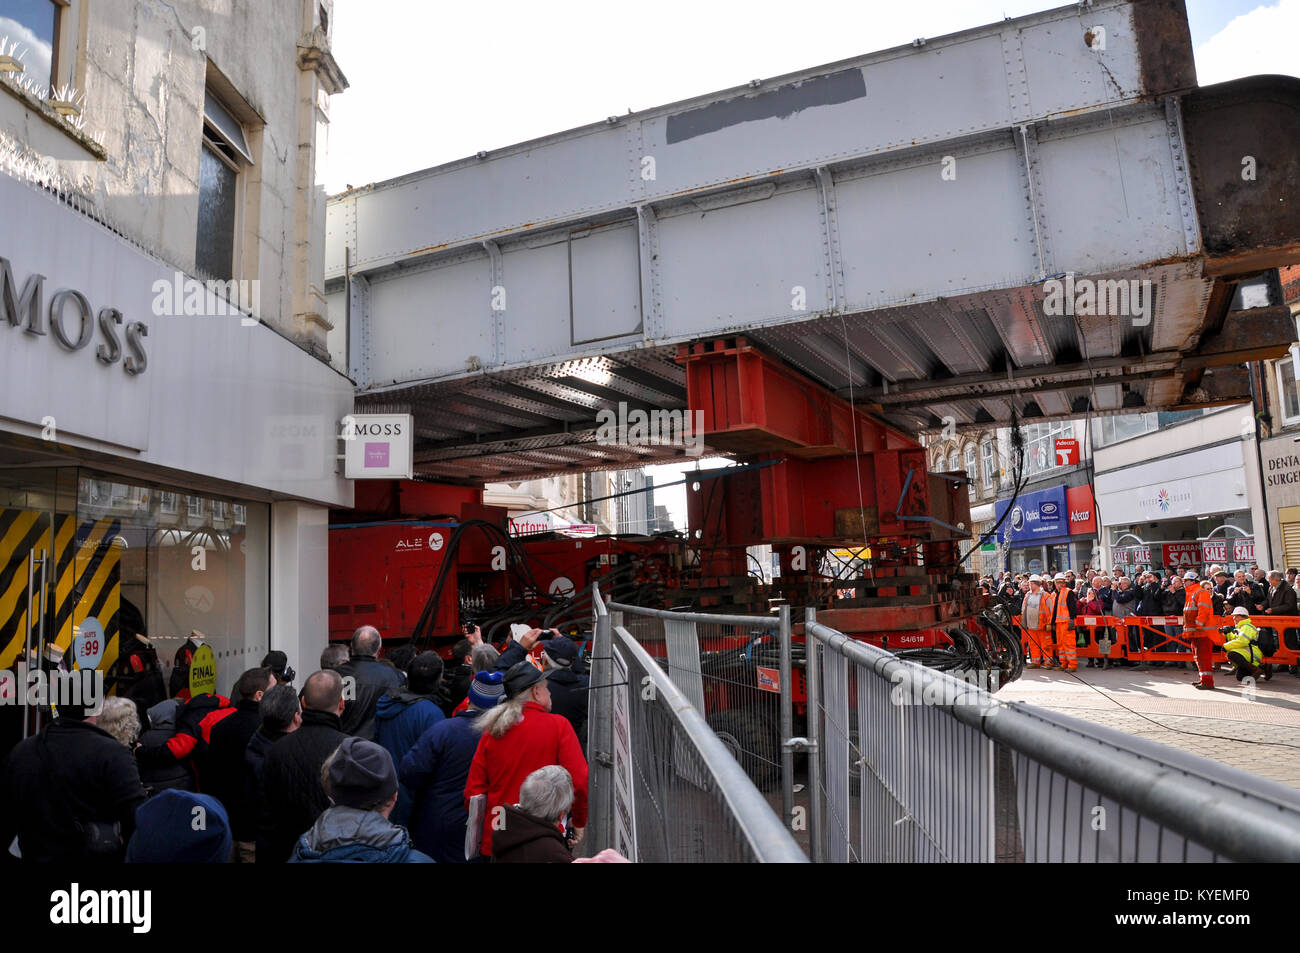 ALE Engineering and Network Rail engineers transporting old railway bridge along the High Street in Southend-on - Stock Image